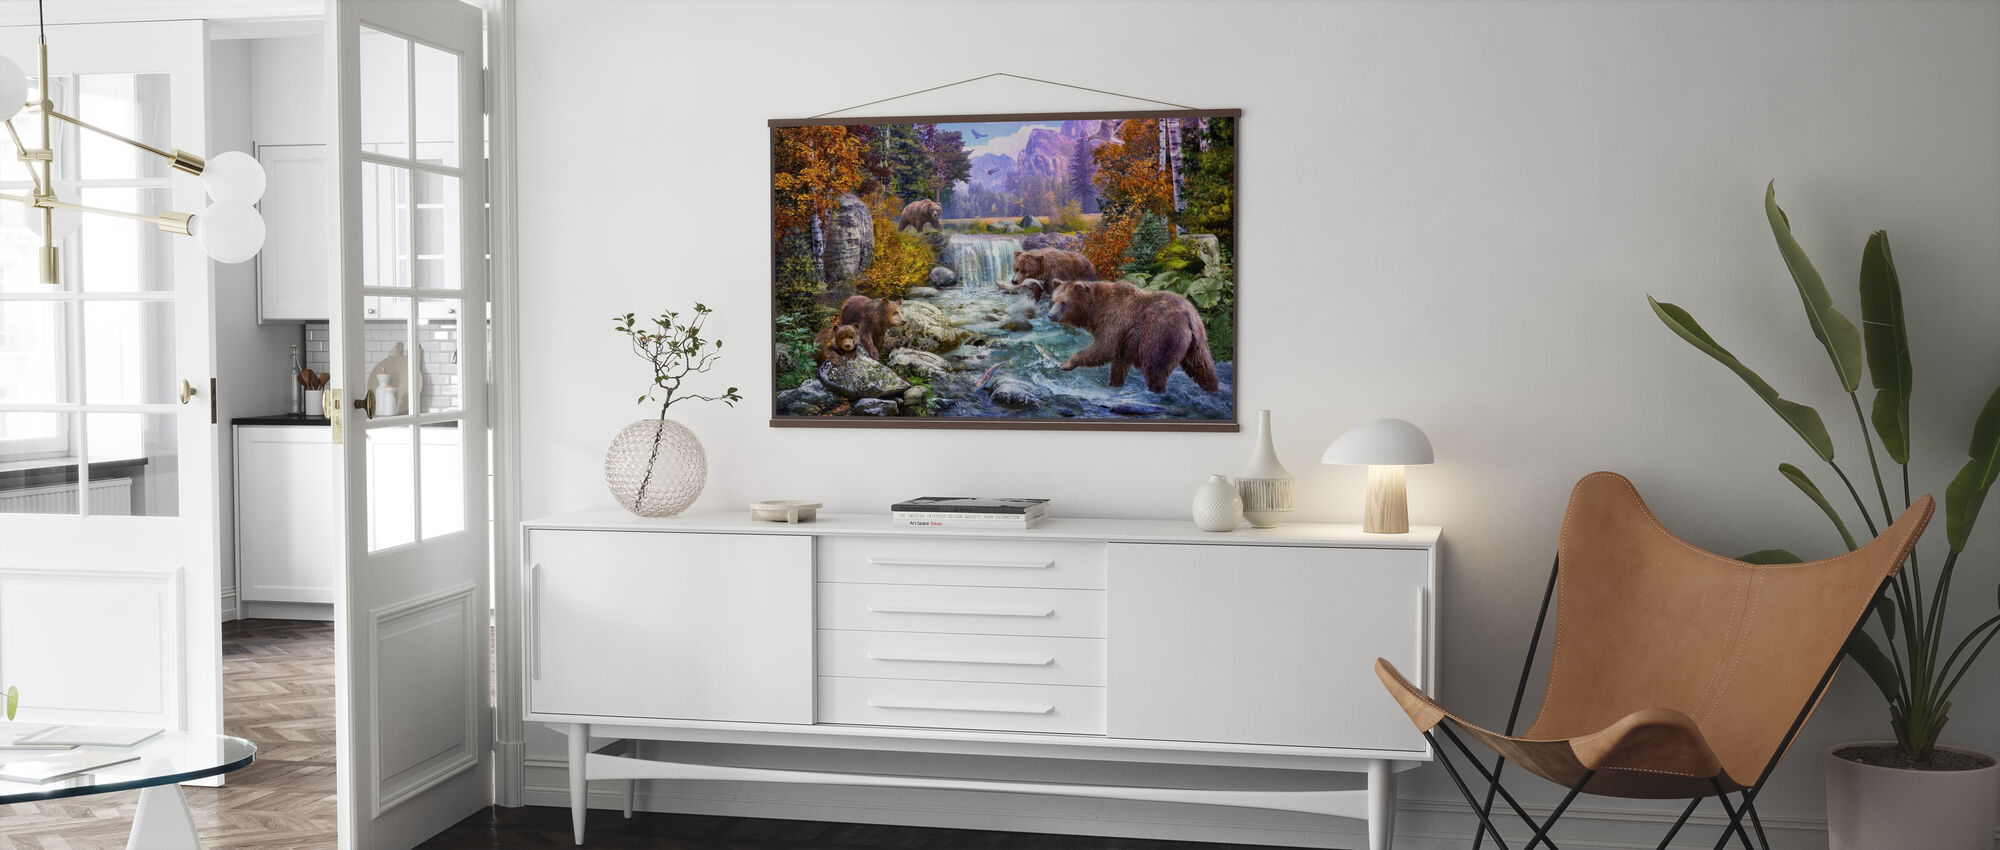 Bear in Mountains - Poster - Living Room